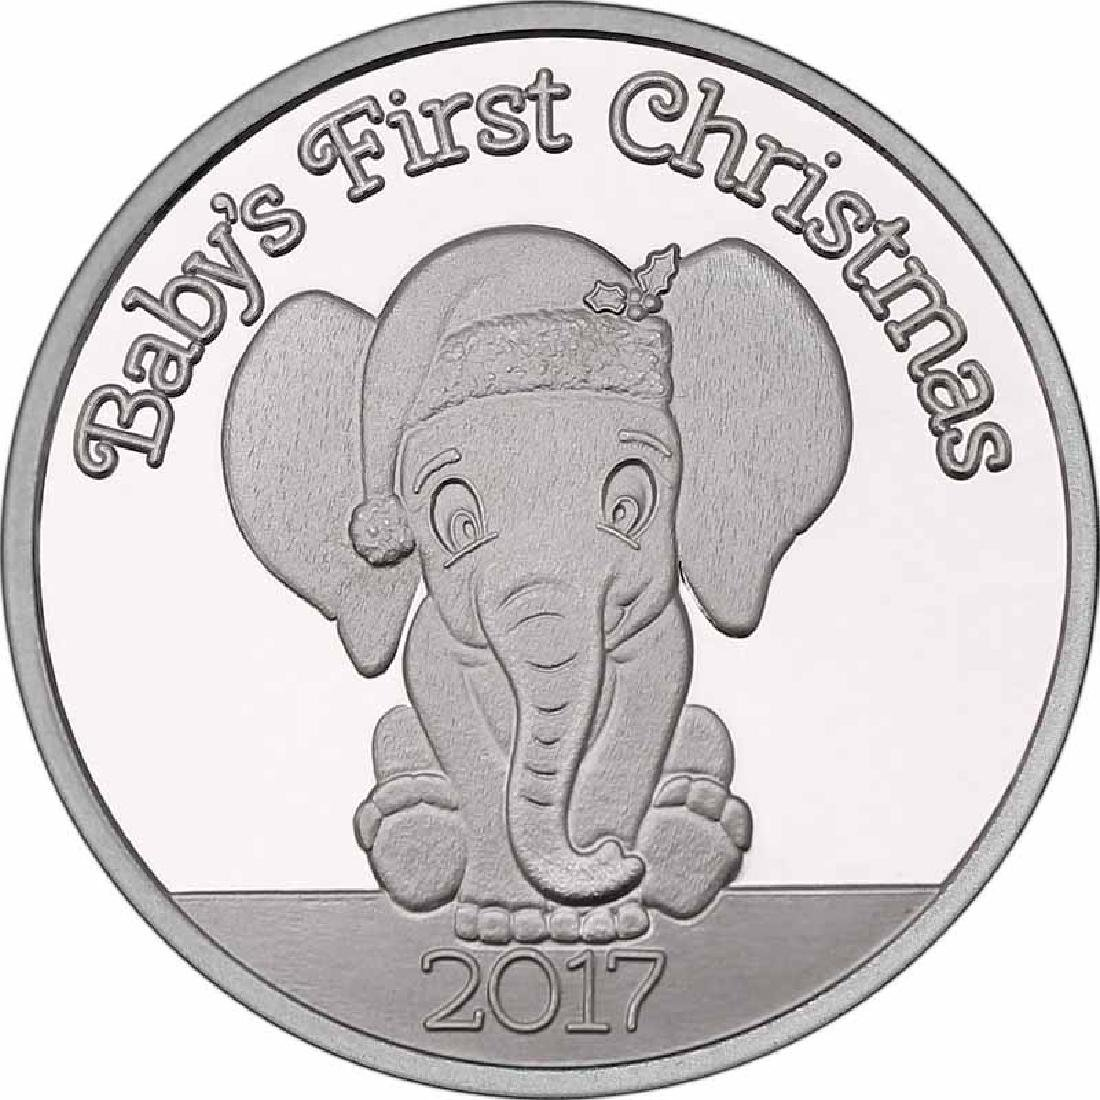 Christmas 2017 Silver Round X-14 Babys First Christmas